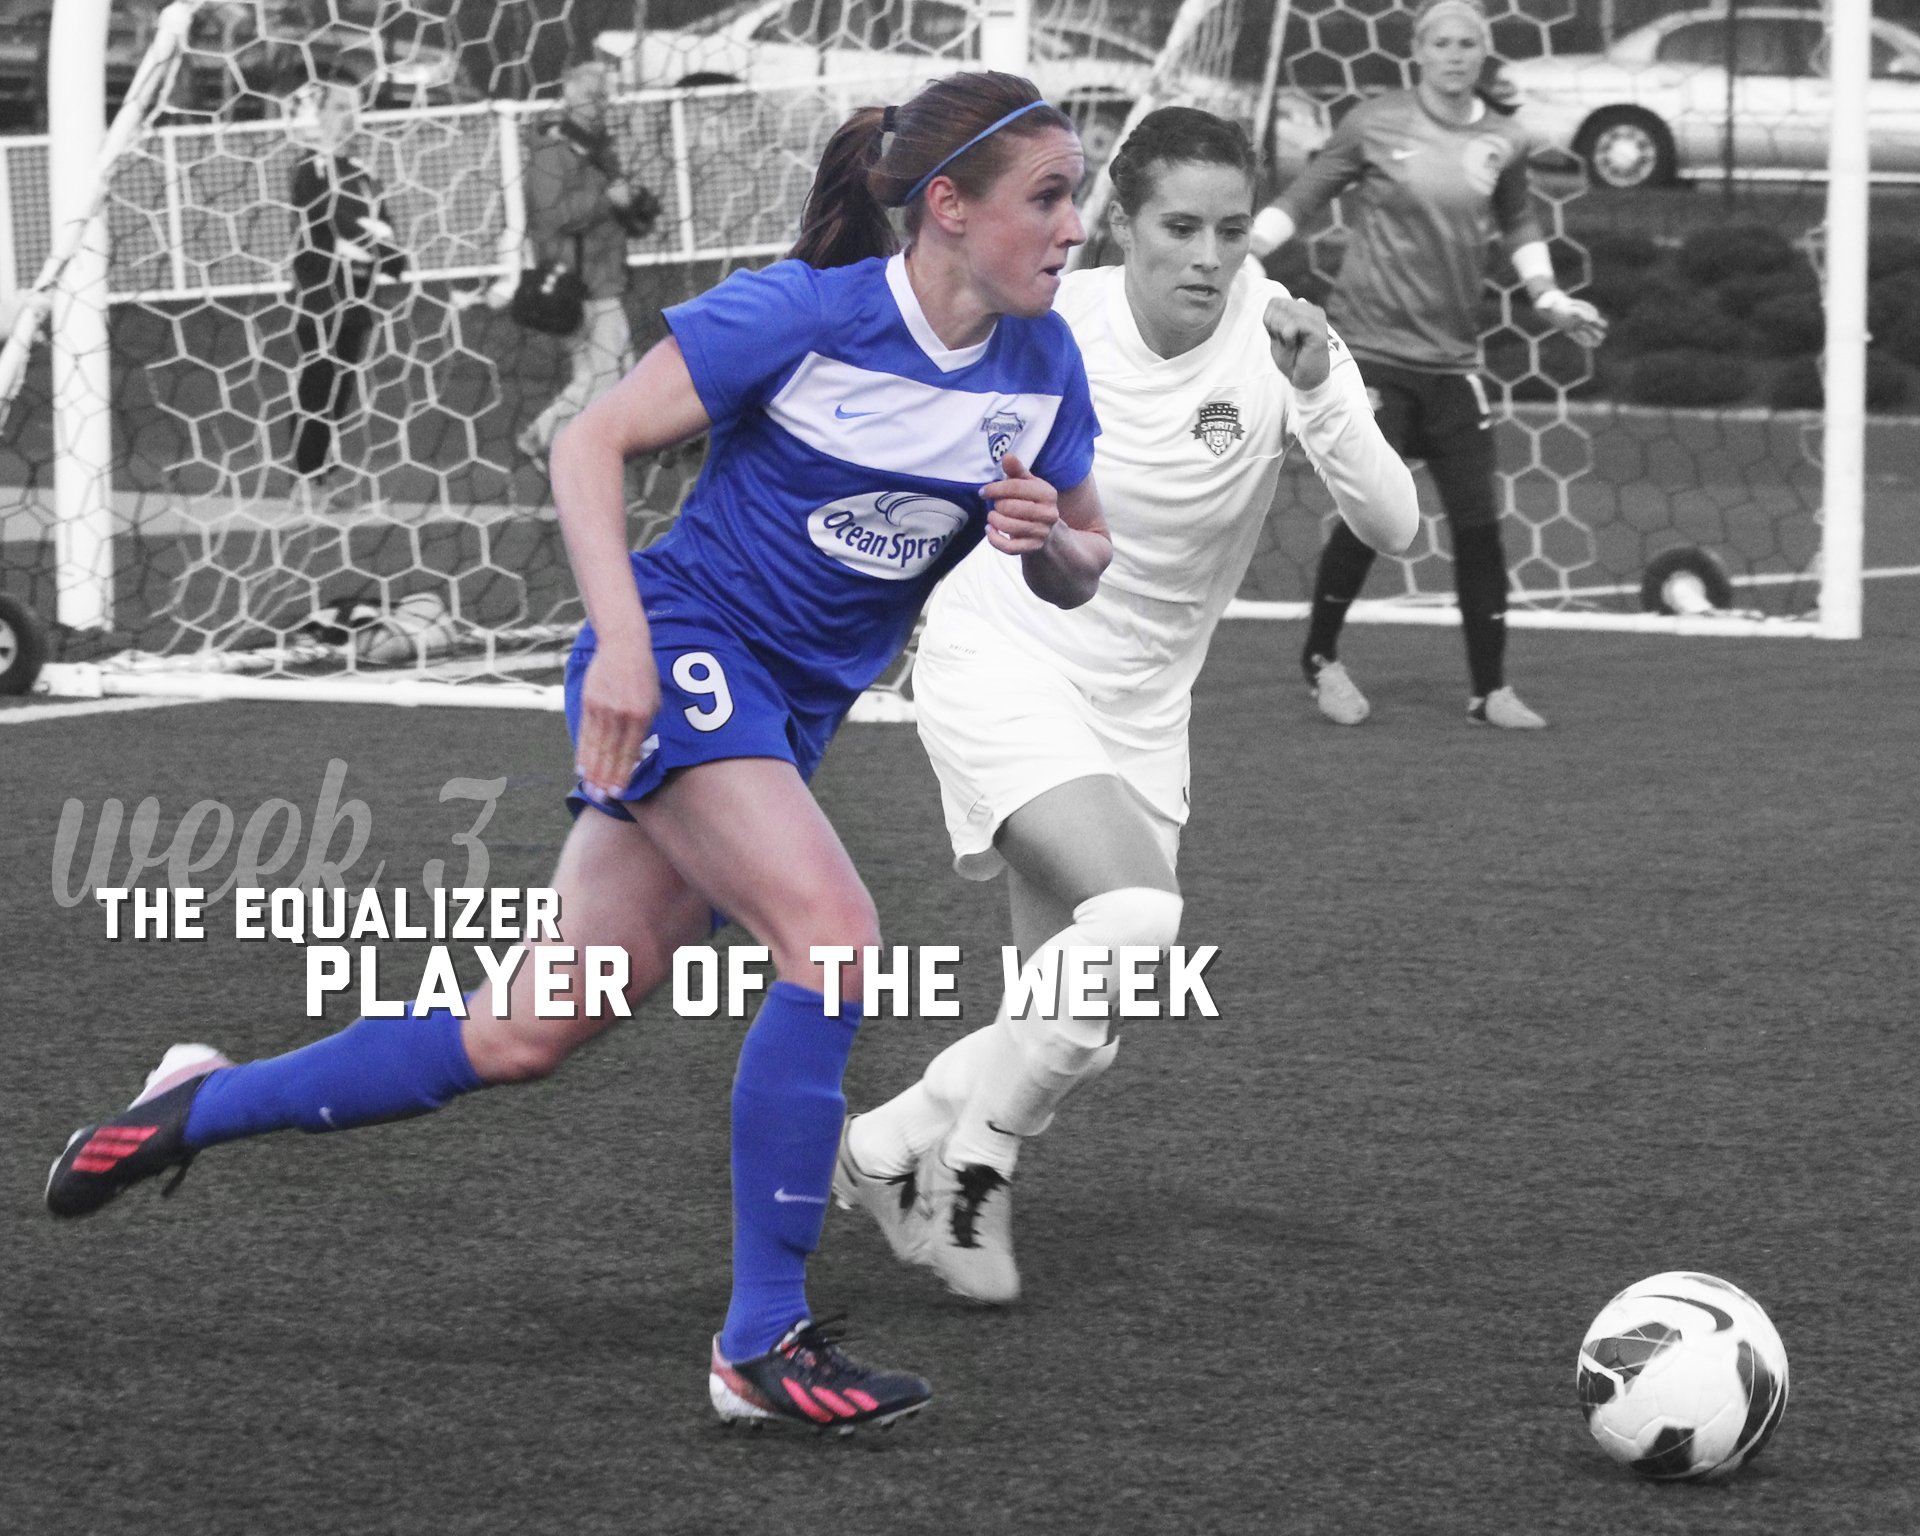 Boston Breakers midfielder Heather O'Reilly is The Equalizer's Week 3 Player of the Week. She scored twice in a 2-1 win over the Flash. (Photo copyright Meg Linehan for The Equalizer.)